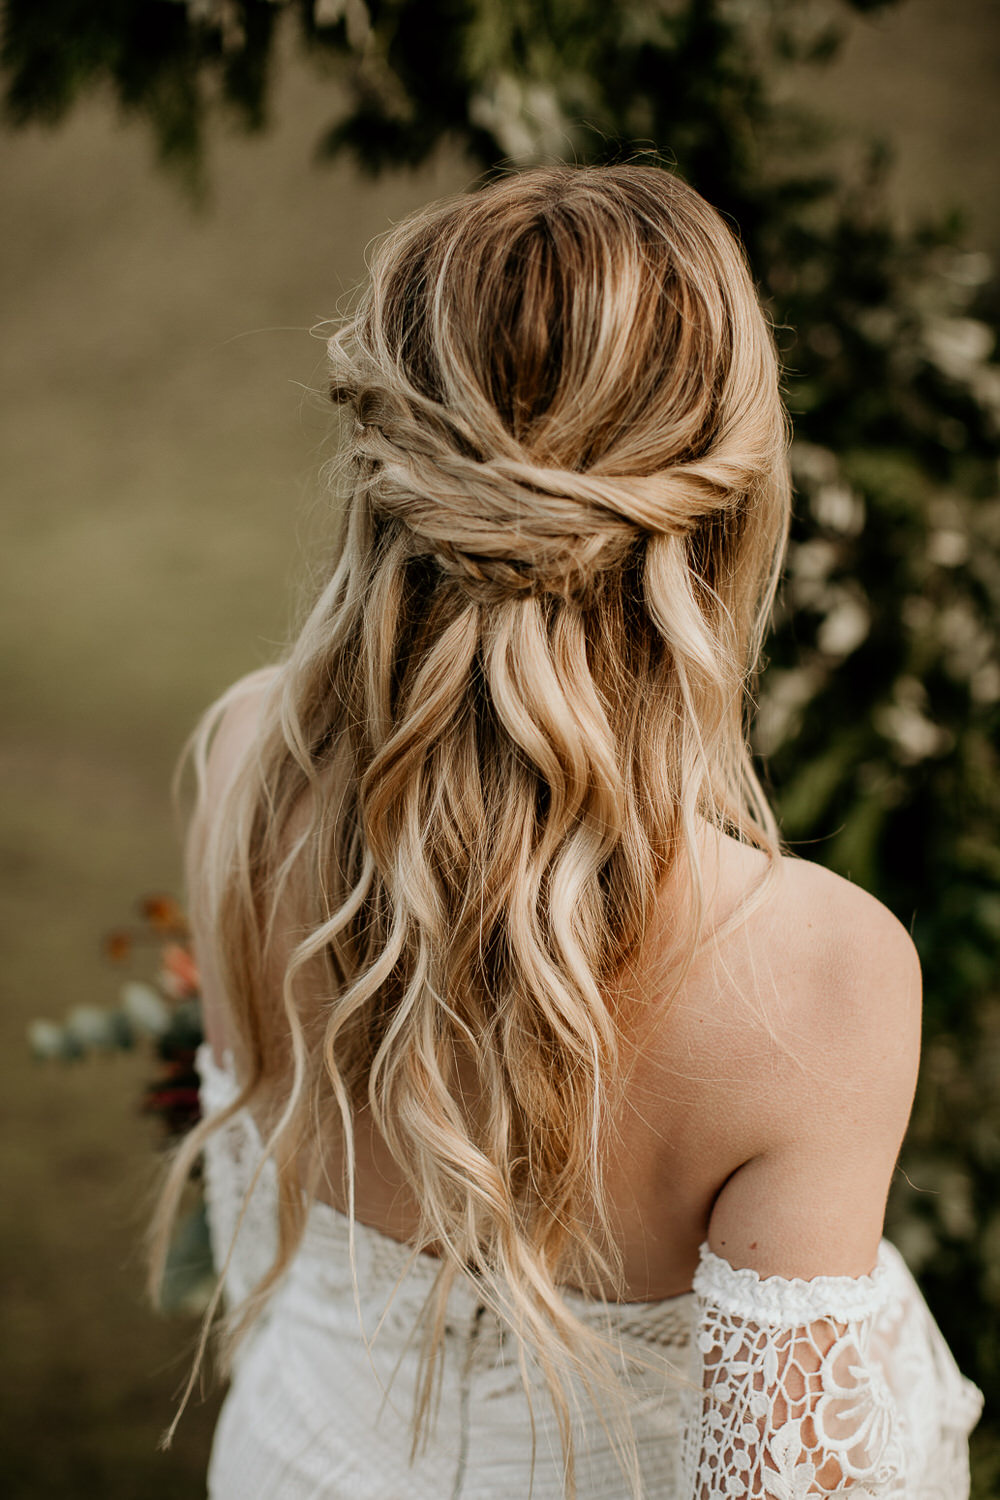 Wedding Hair And Makeup Ct Jonathan Edwards Winery: Beautiful Bridal Half Up Half Down Wedding Hair Inspiration